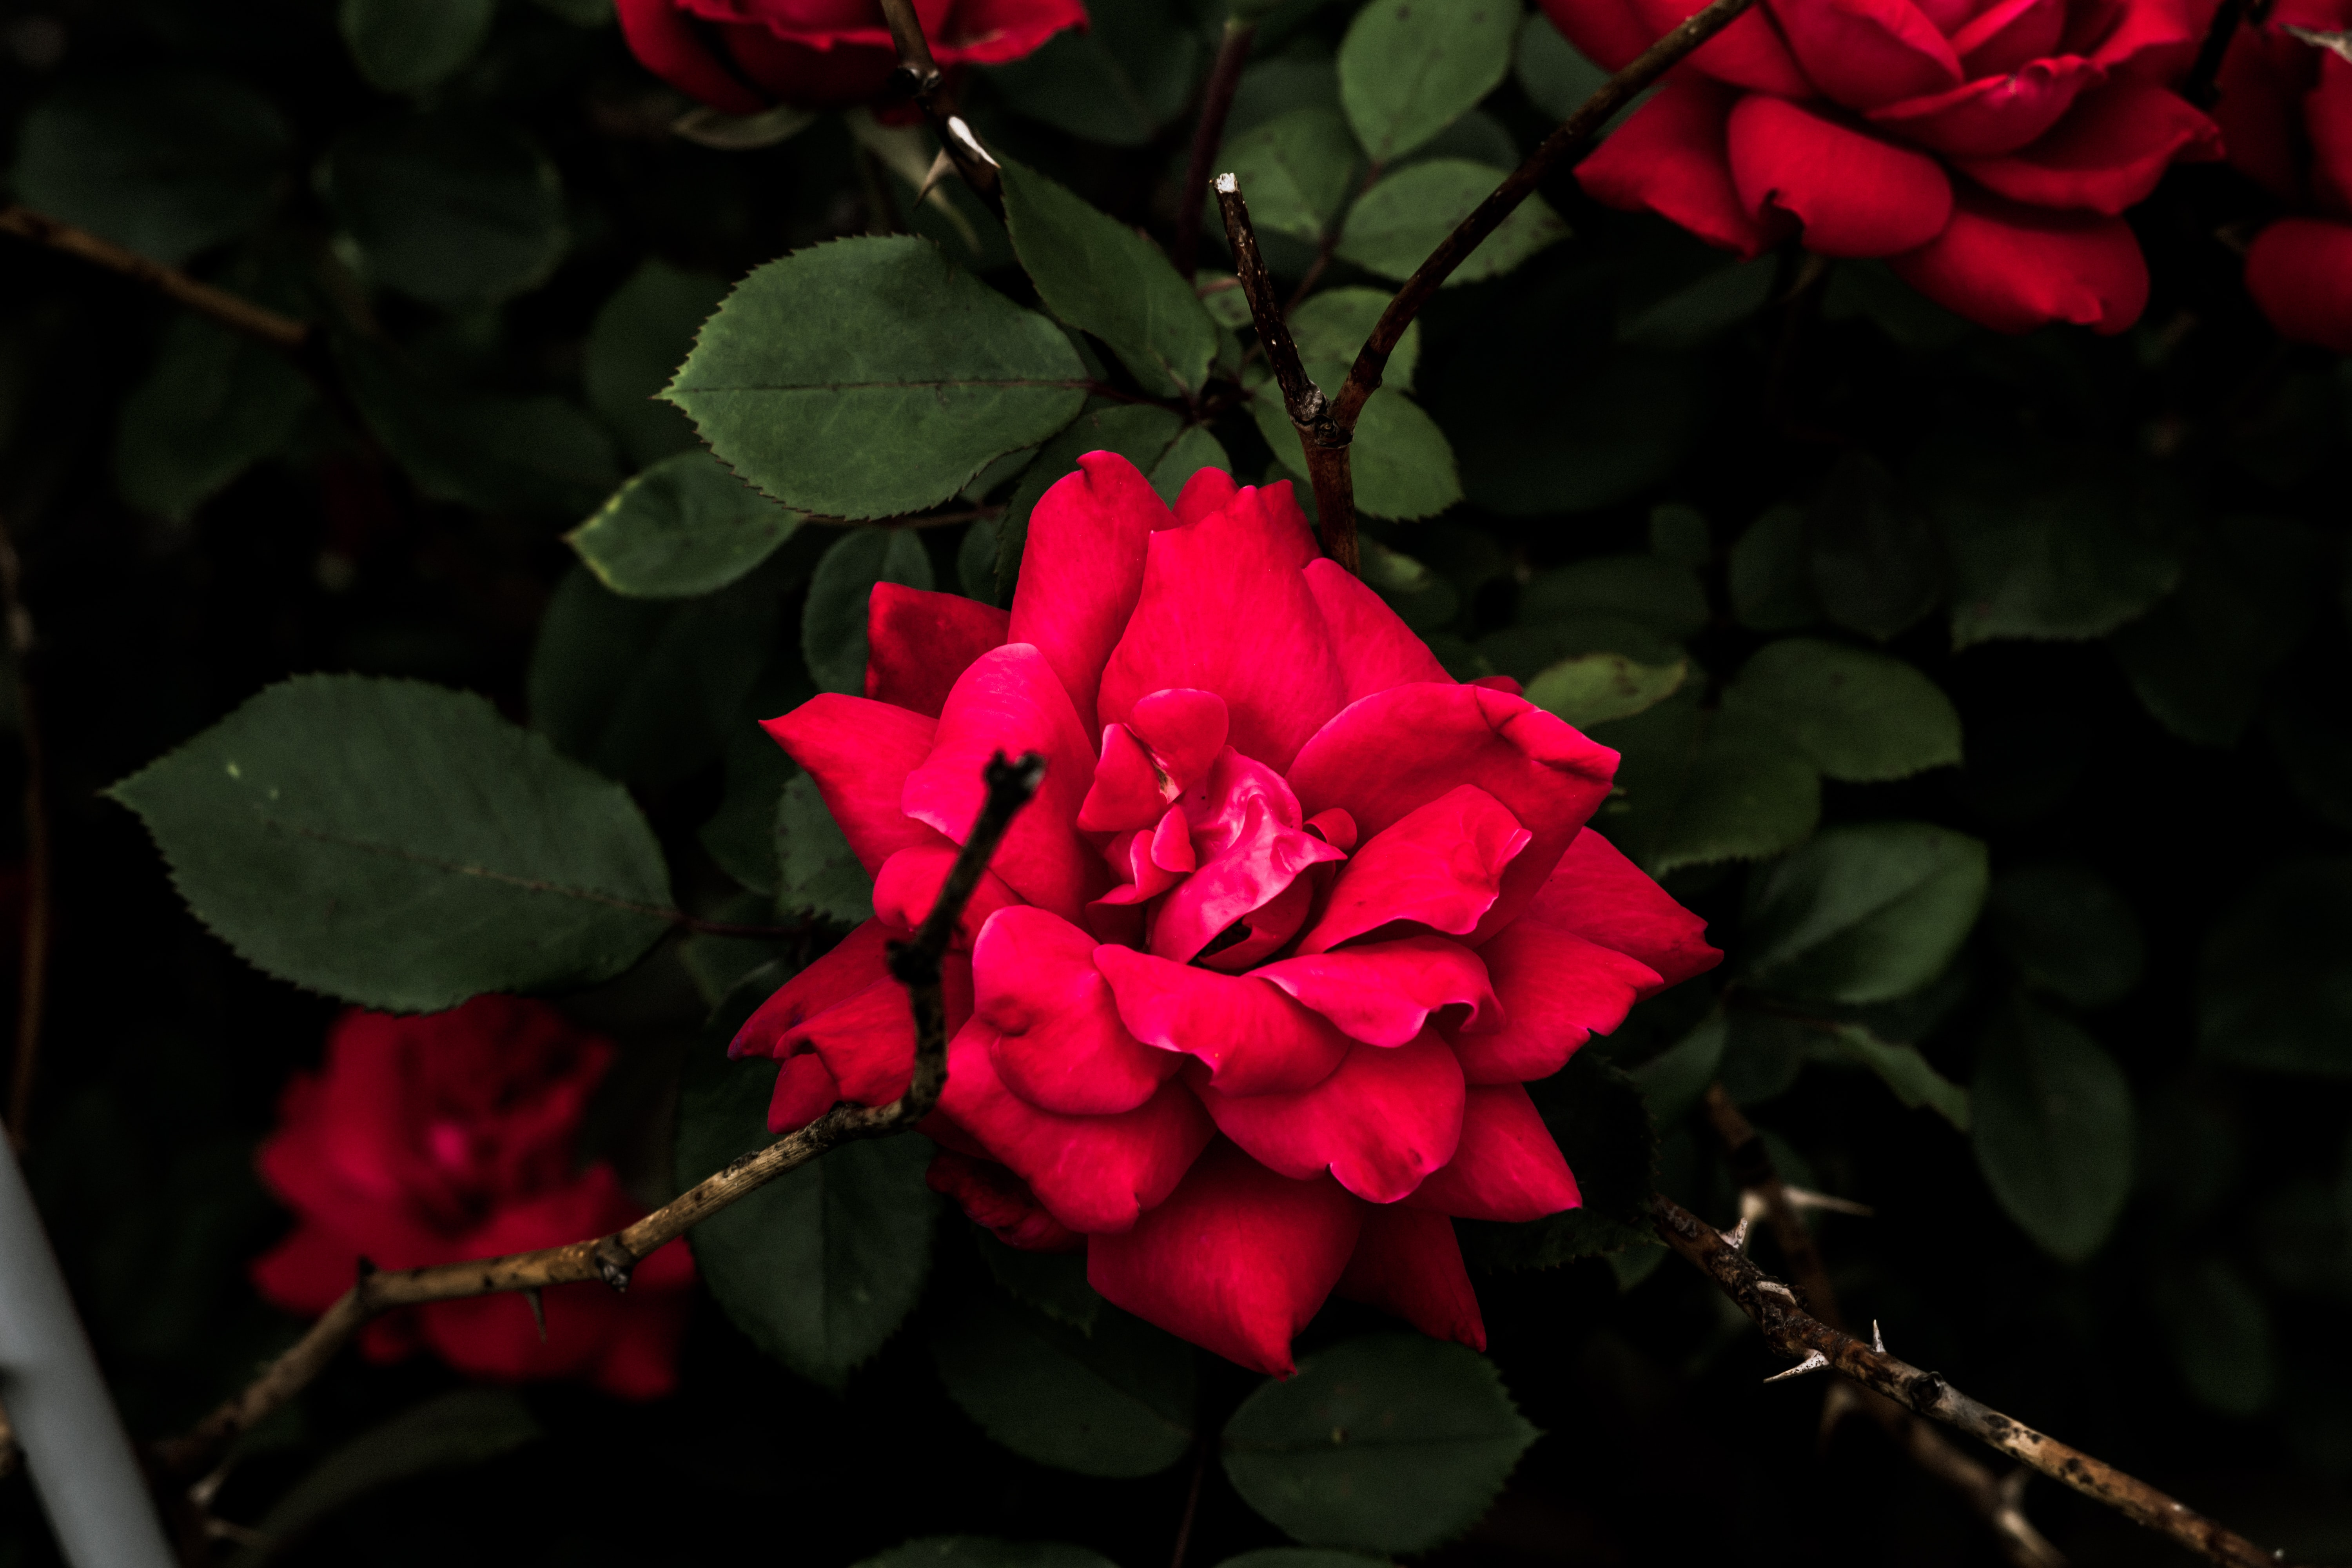 Red roses and green leaves blooming in a flower bush outside